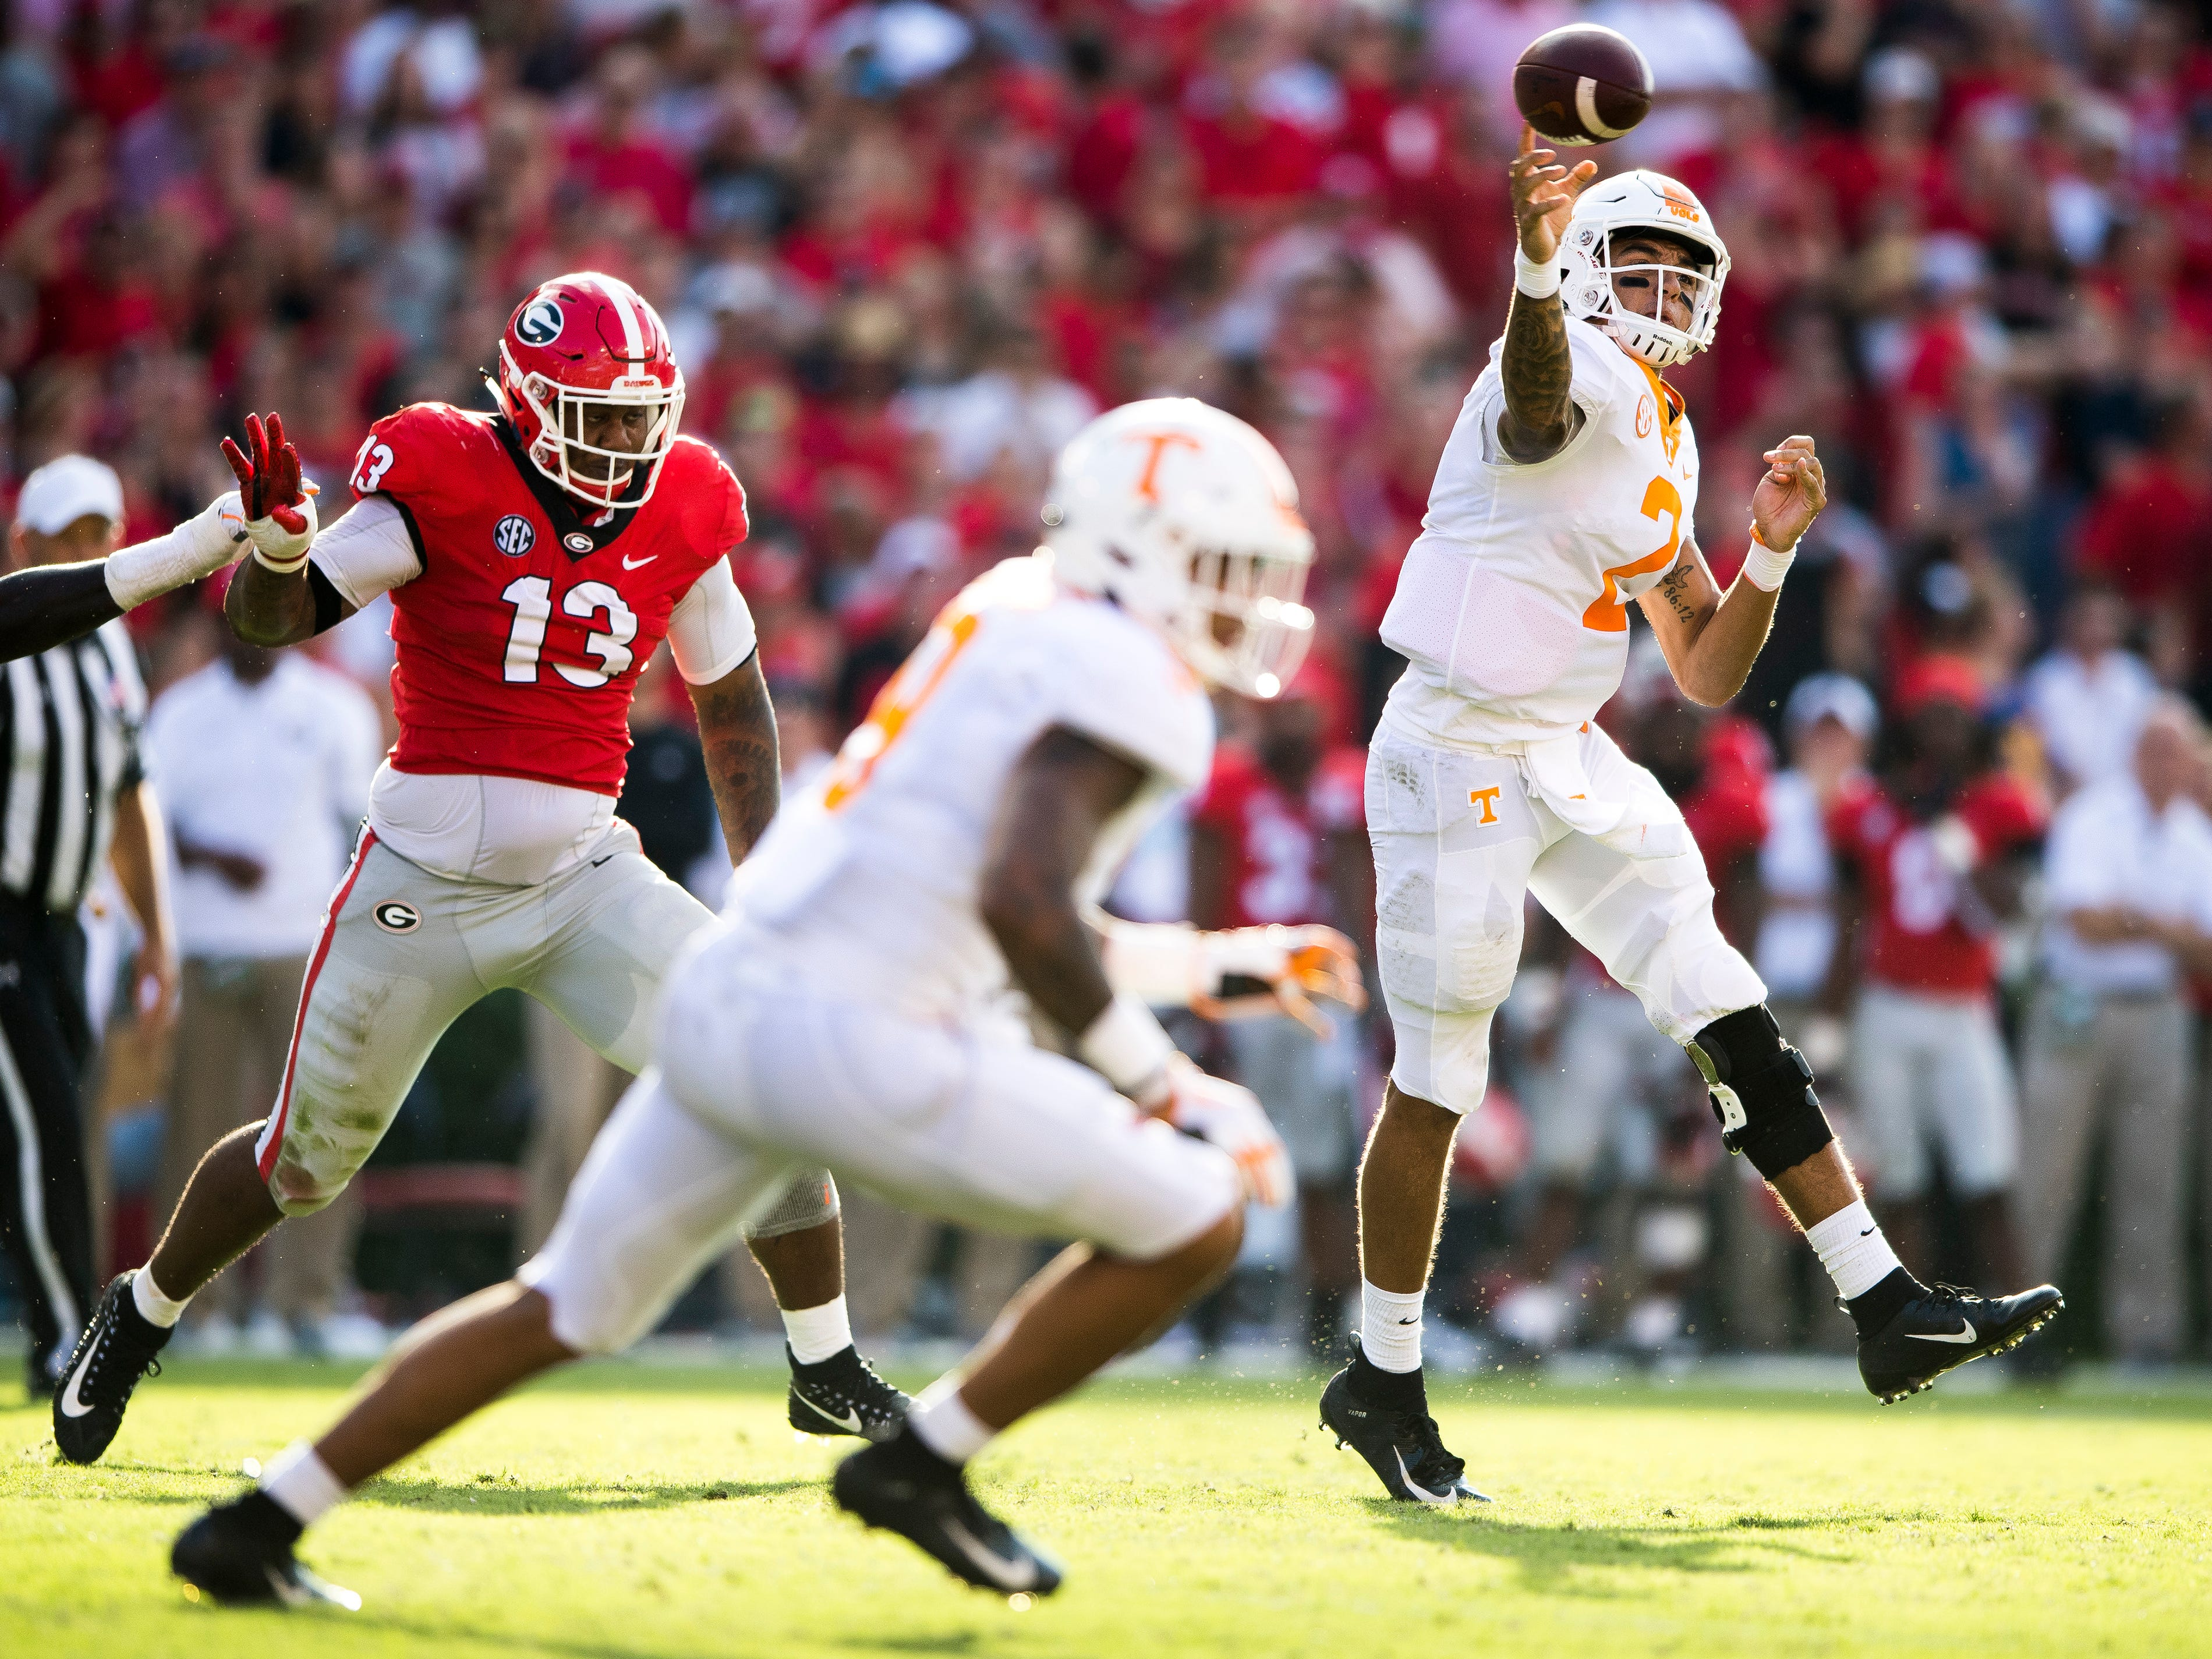 Tennessee quarterback Jarrett Guarantano (2) throws the ball during the Tennessee Volunteers' game against Georgia in Sanford Stadium in Athens, Ga., on Saturday, Sept. 29, 2018.